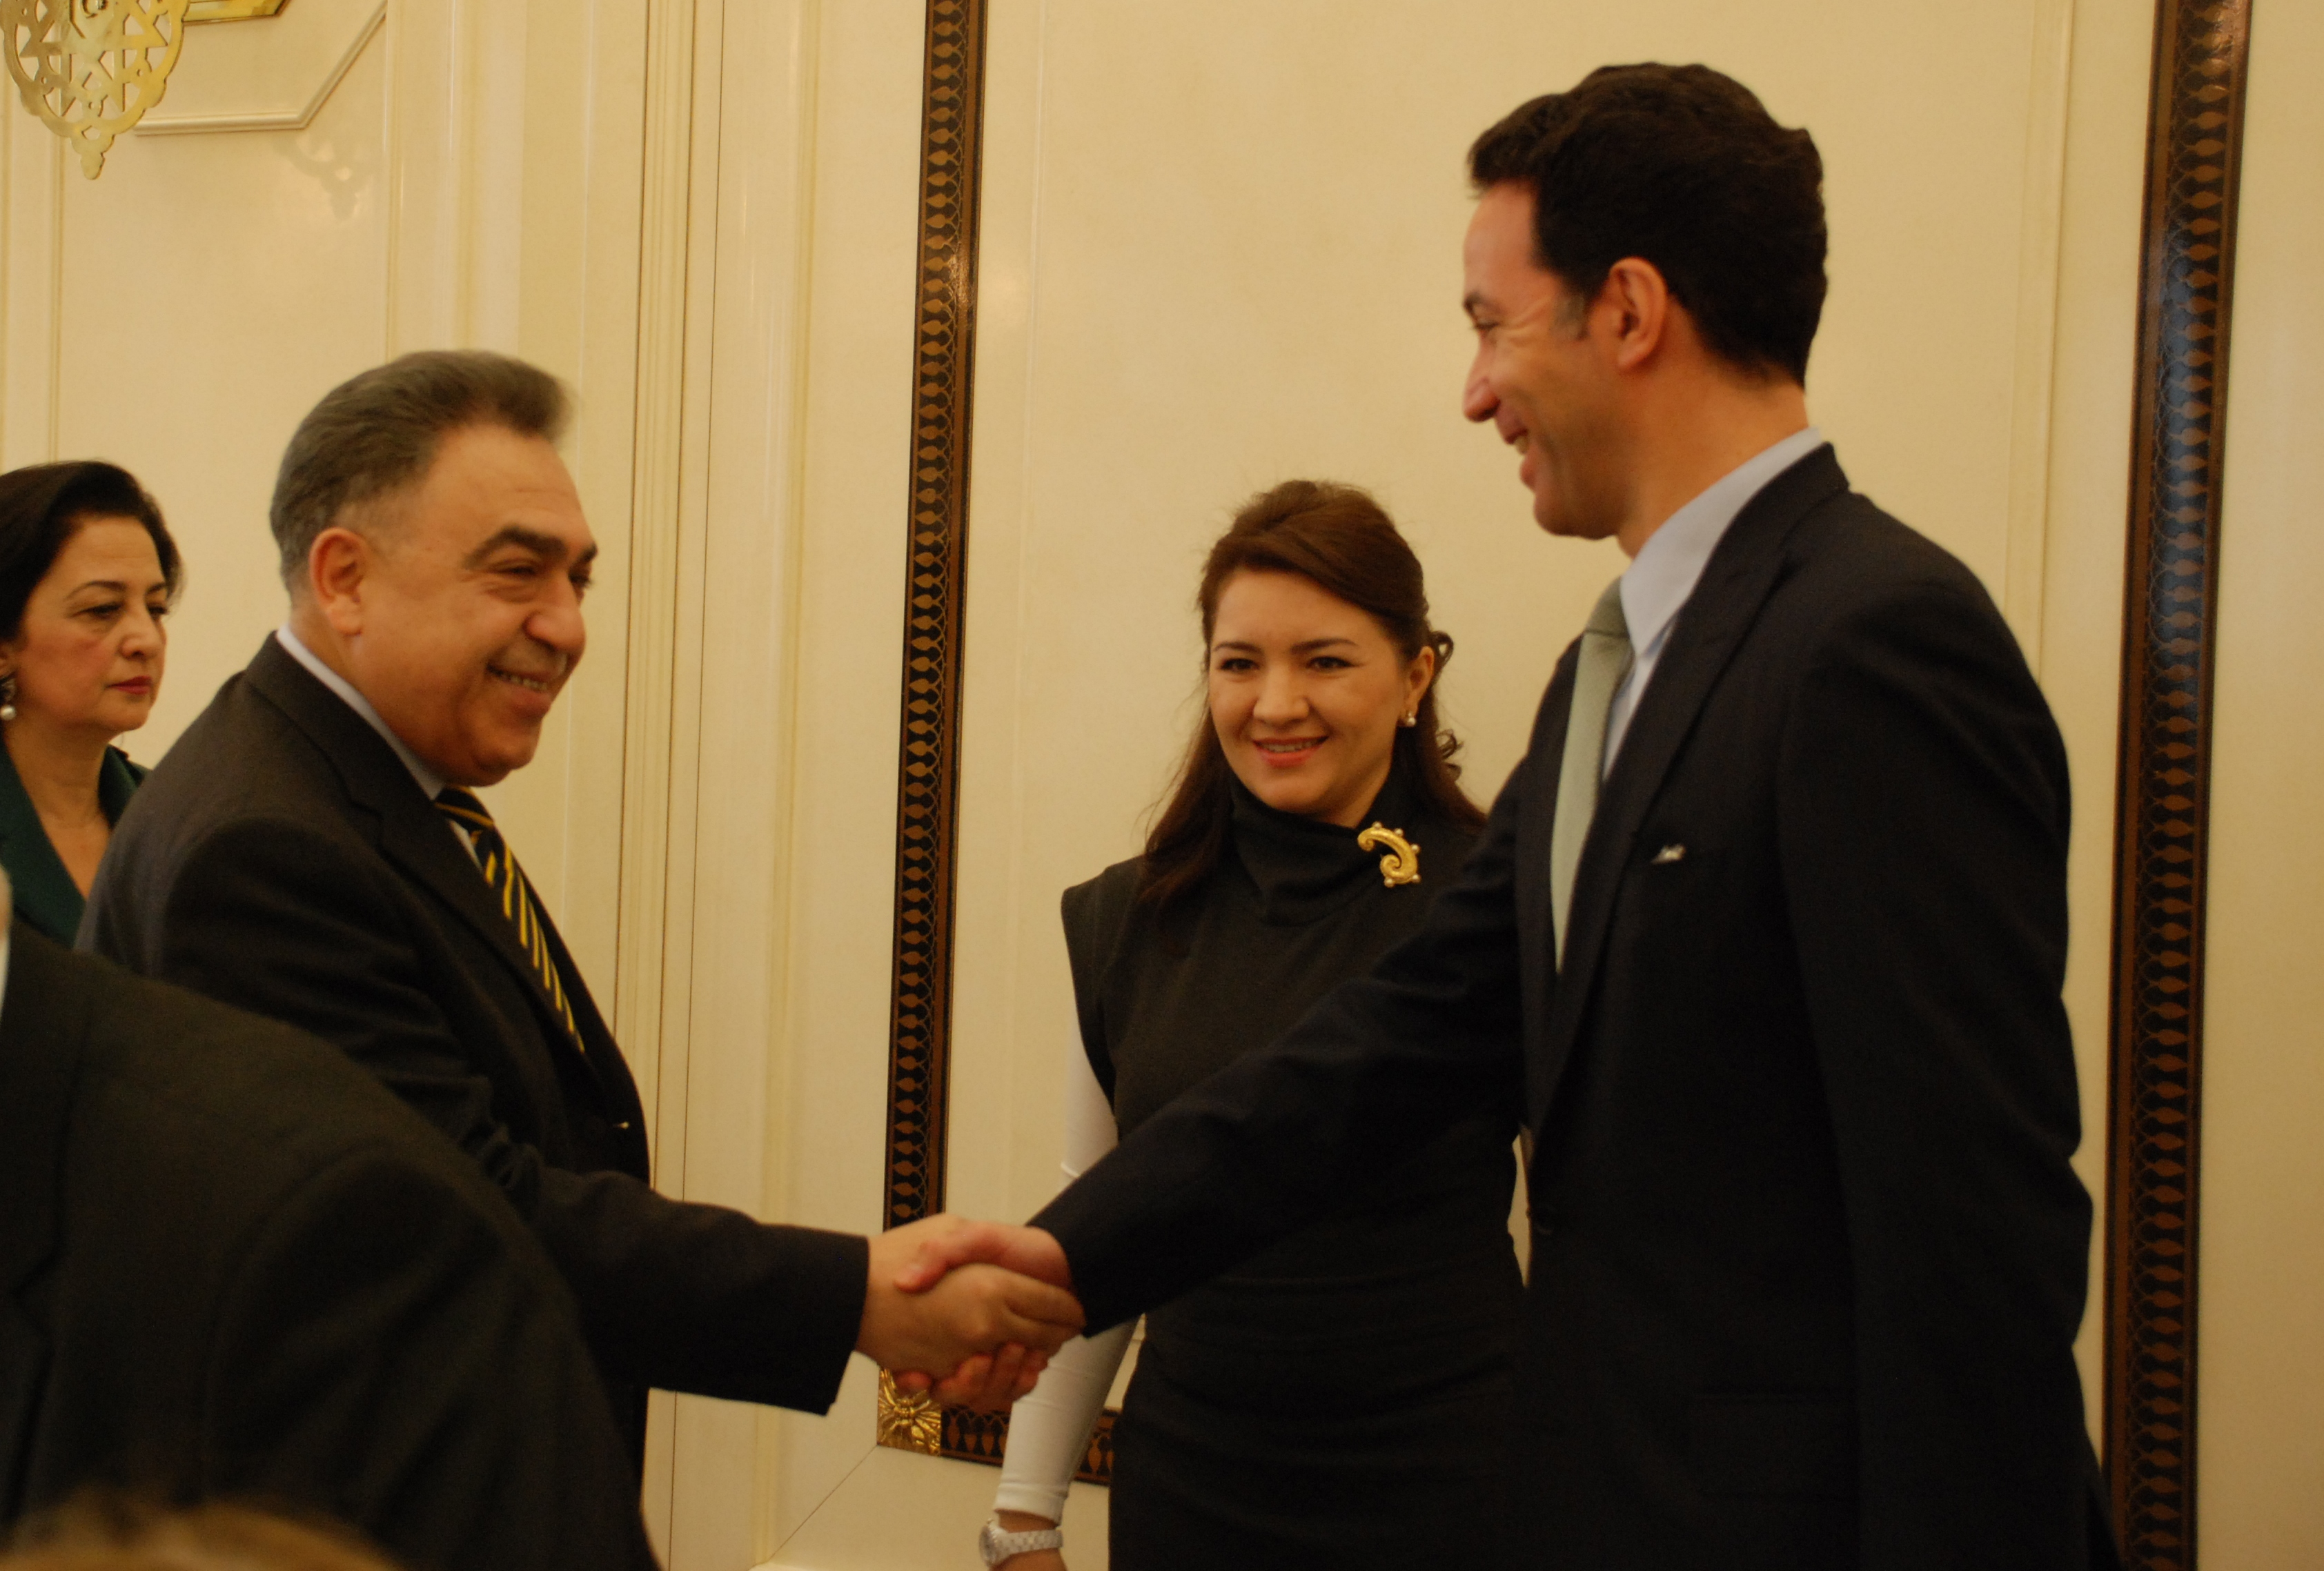 U.S. Charge d'Affaires greeting the Head of Administration of Azerbaijani Parliament